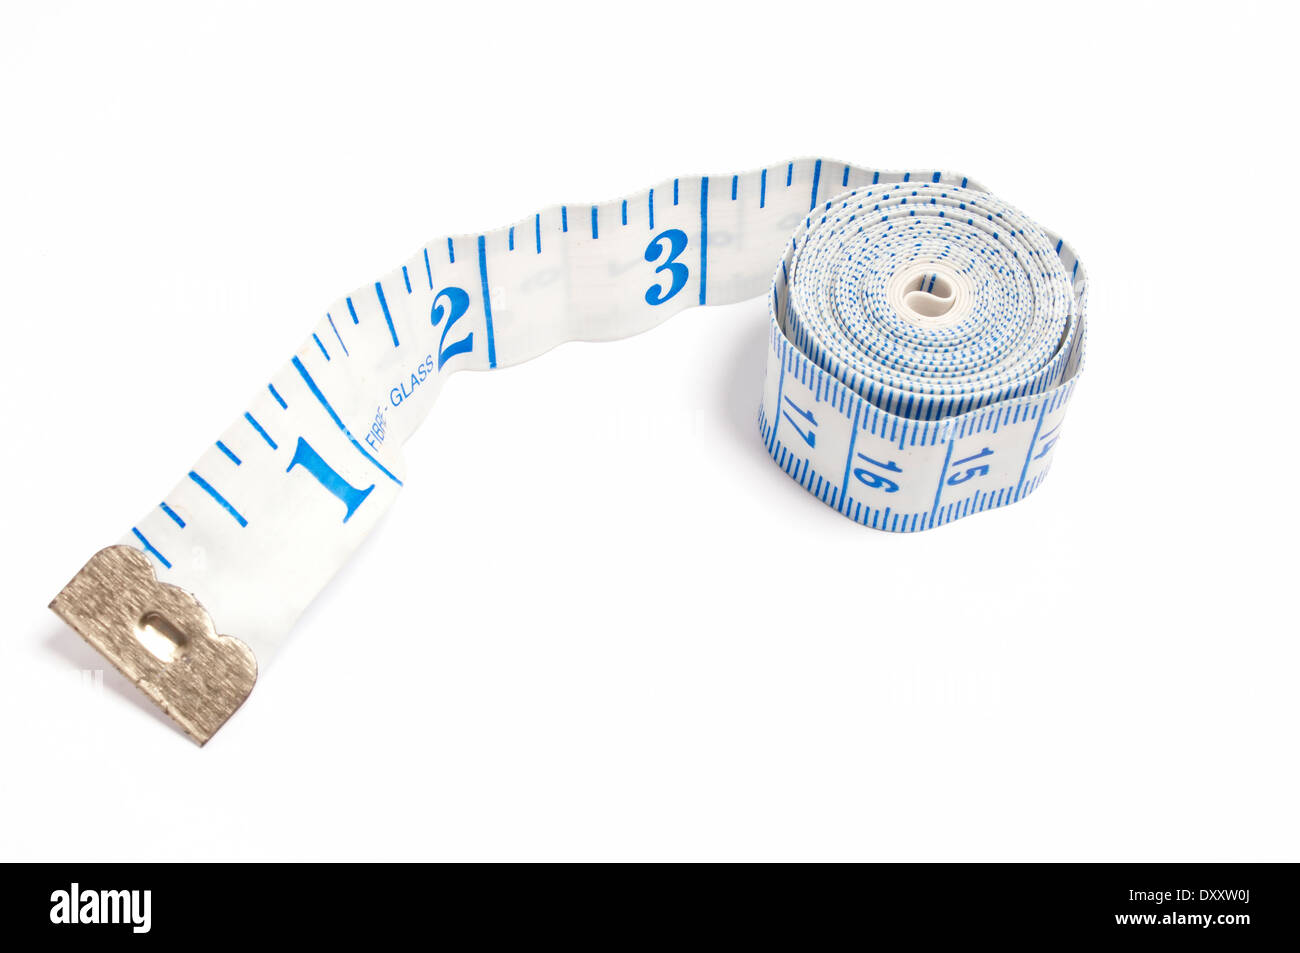 Close up of inches on tape measure - Stock Image